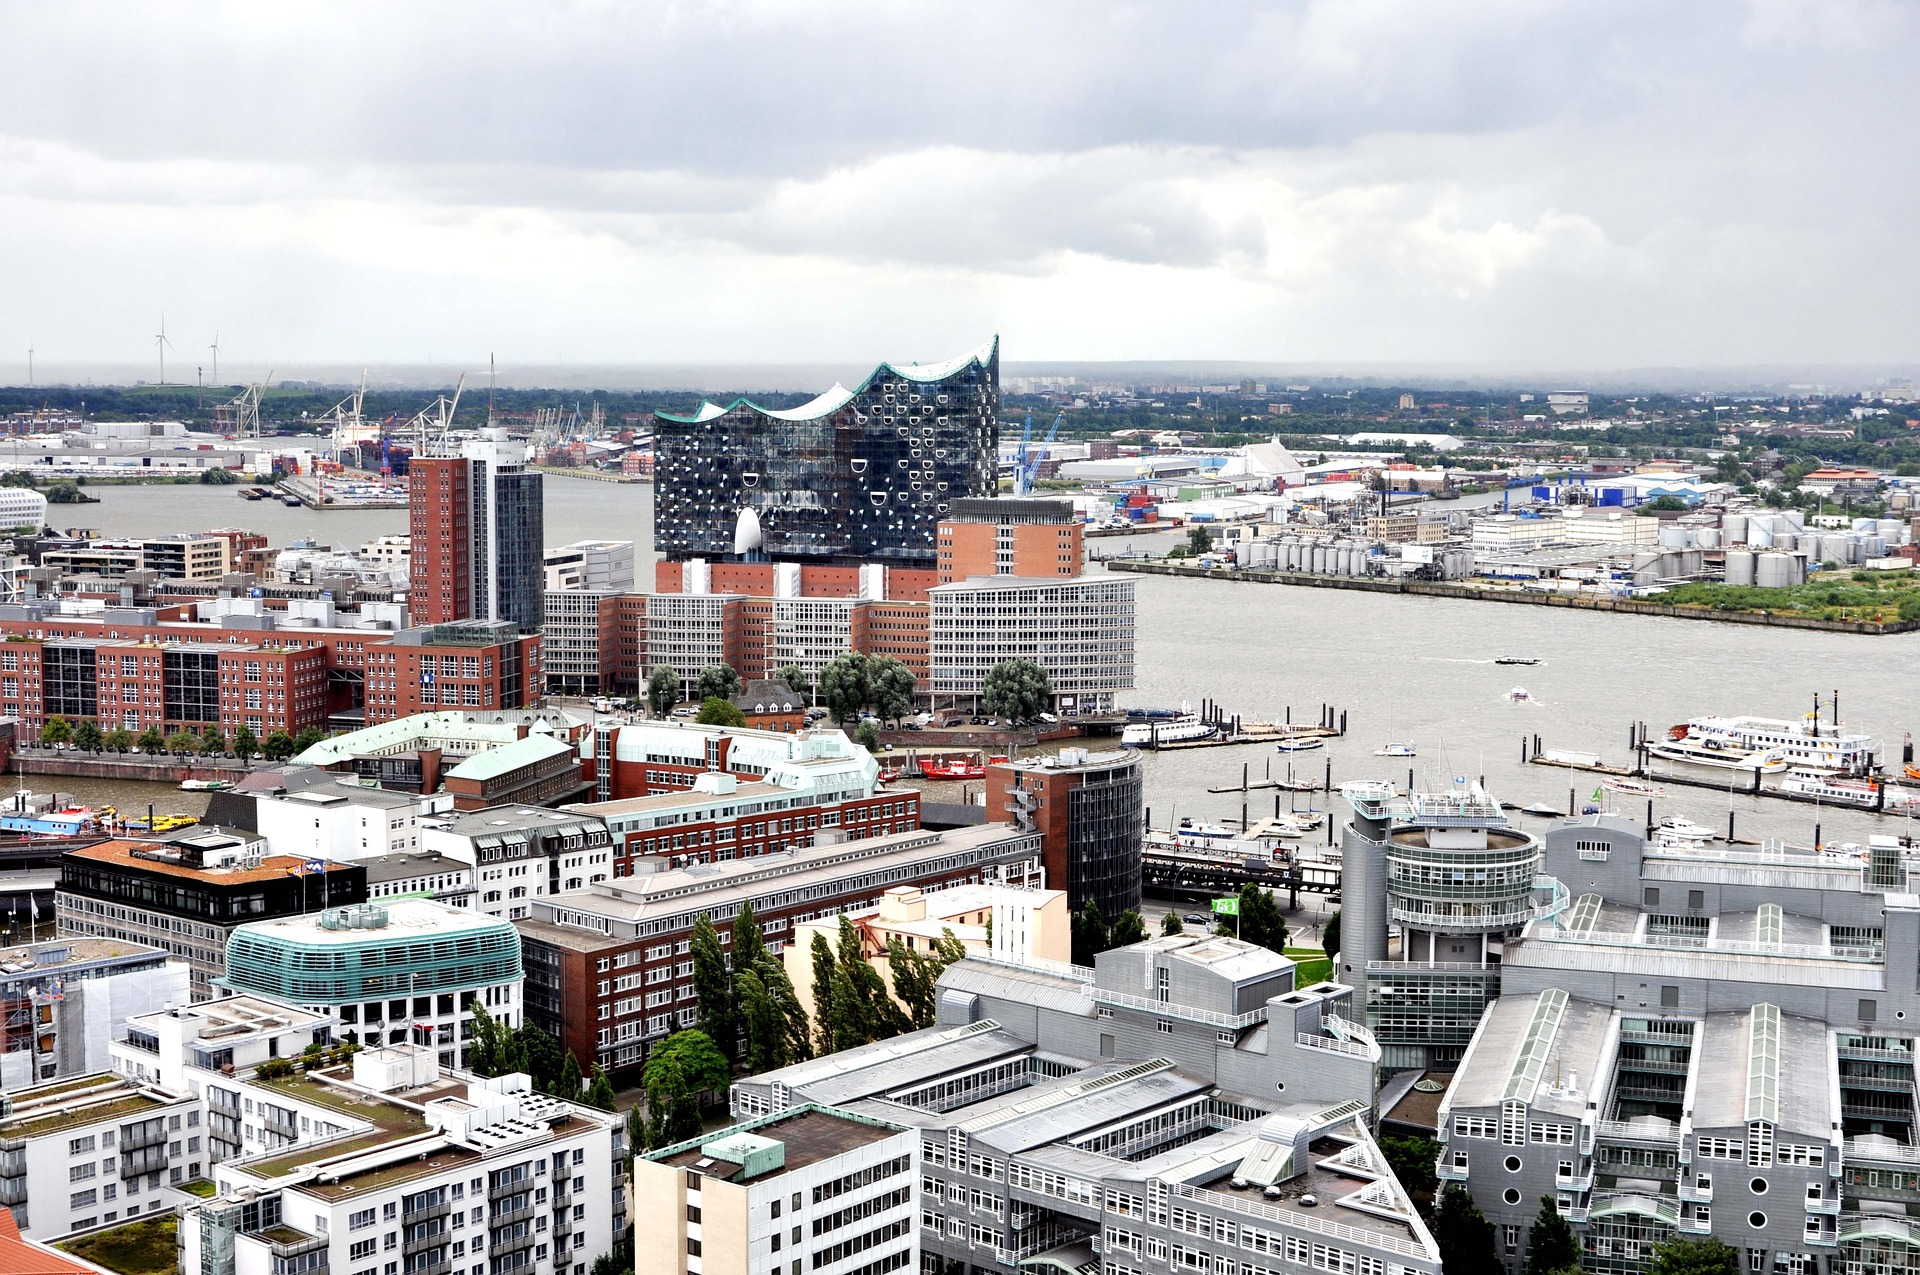 New urban mobility measures planned in Hamburg (Germany)